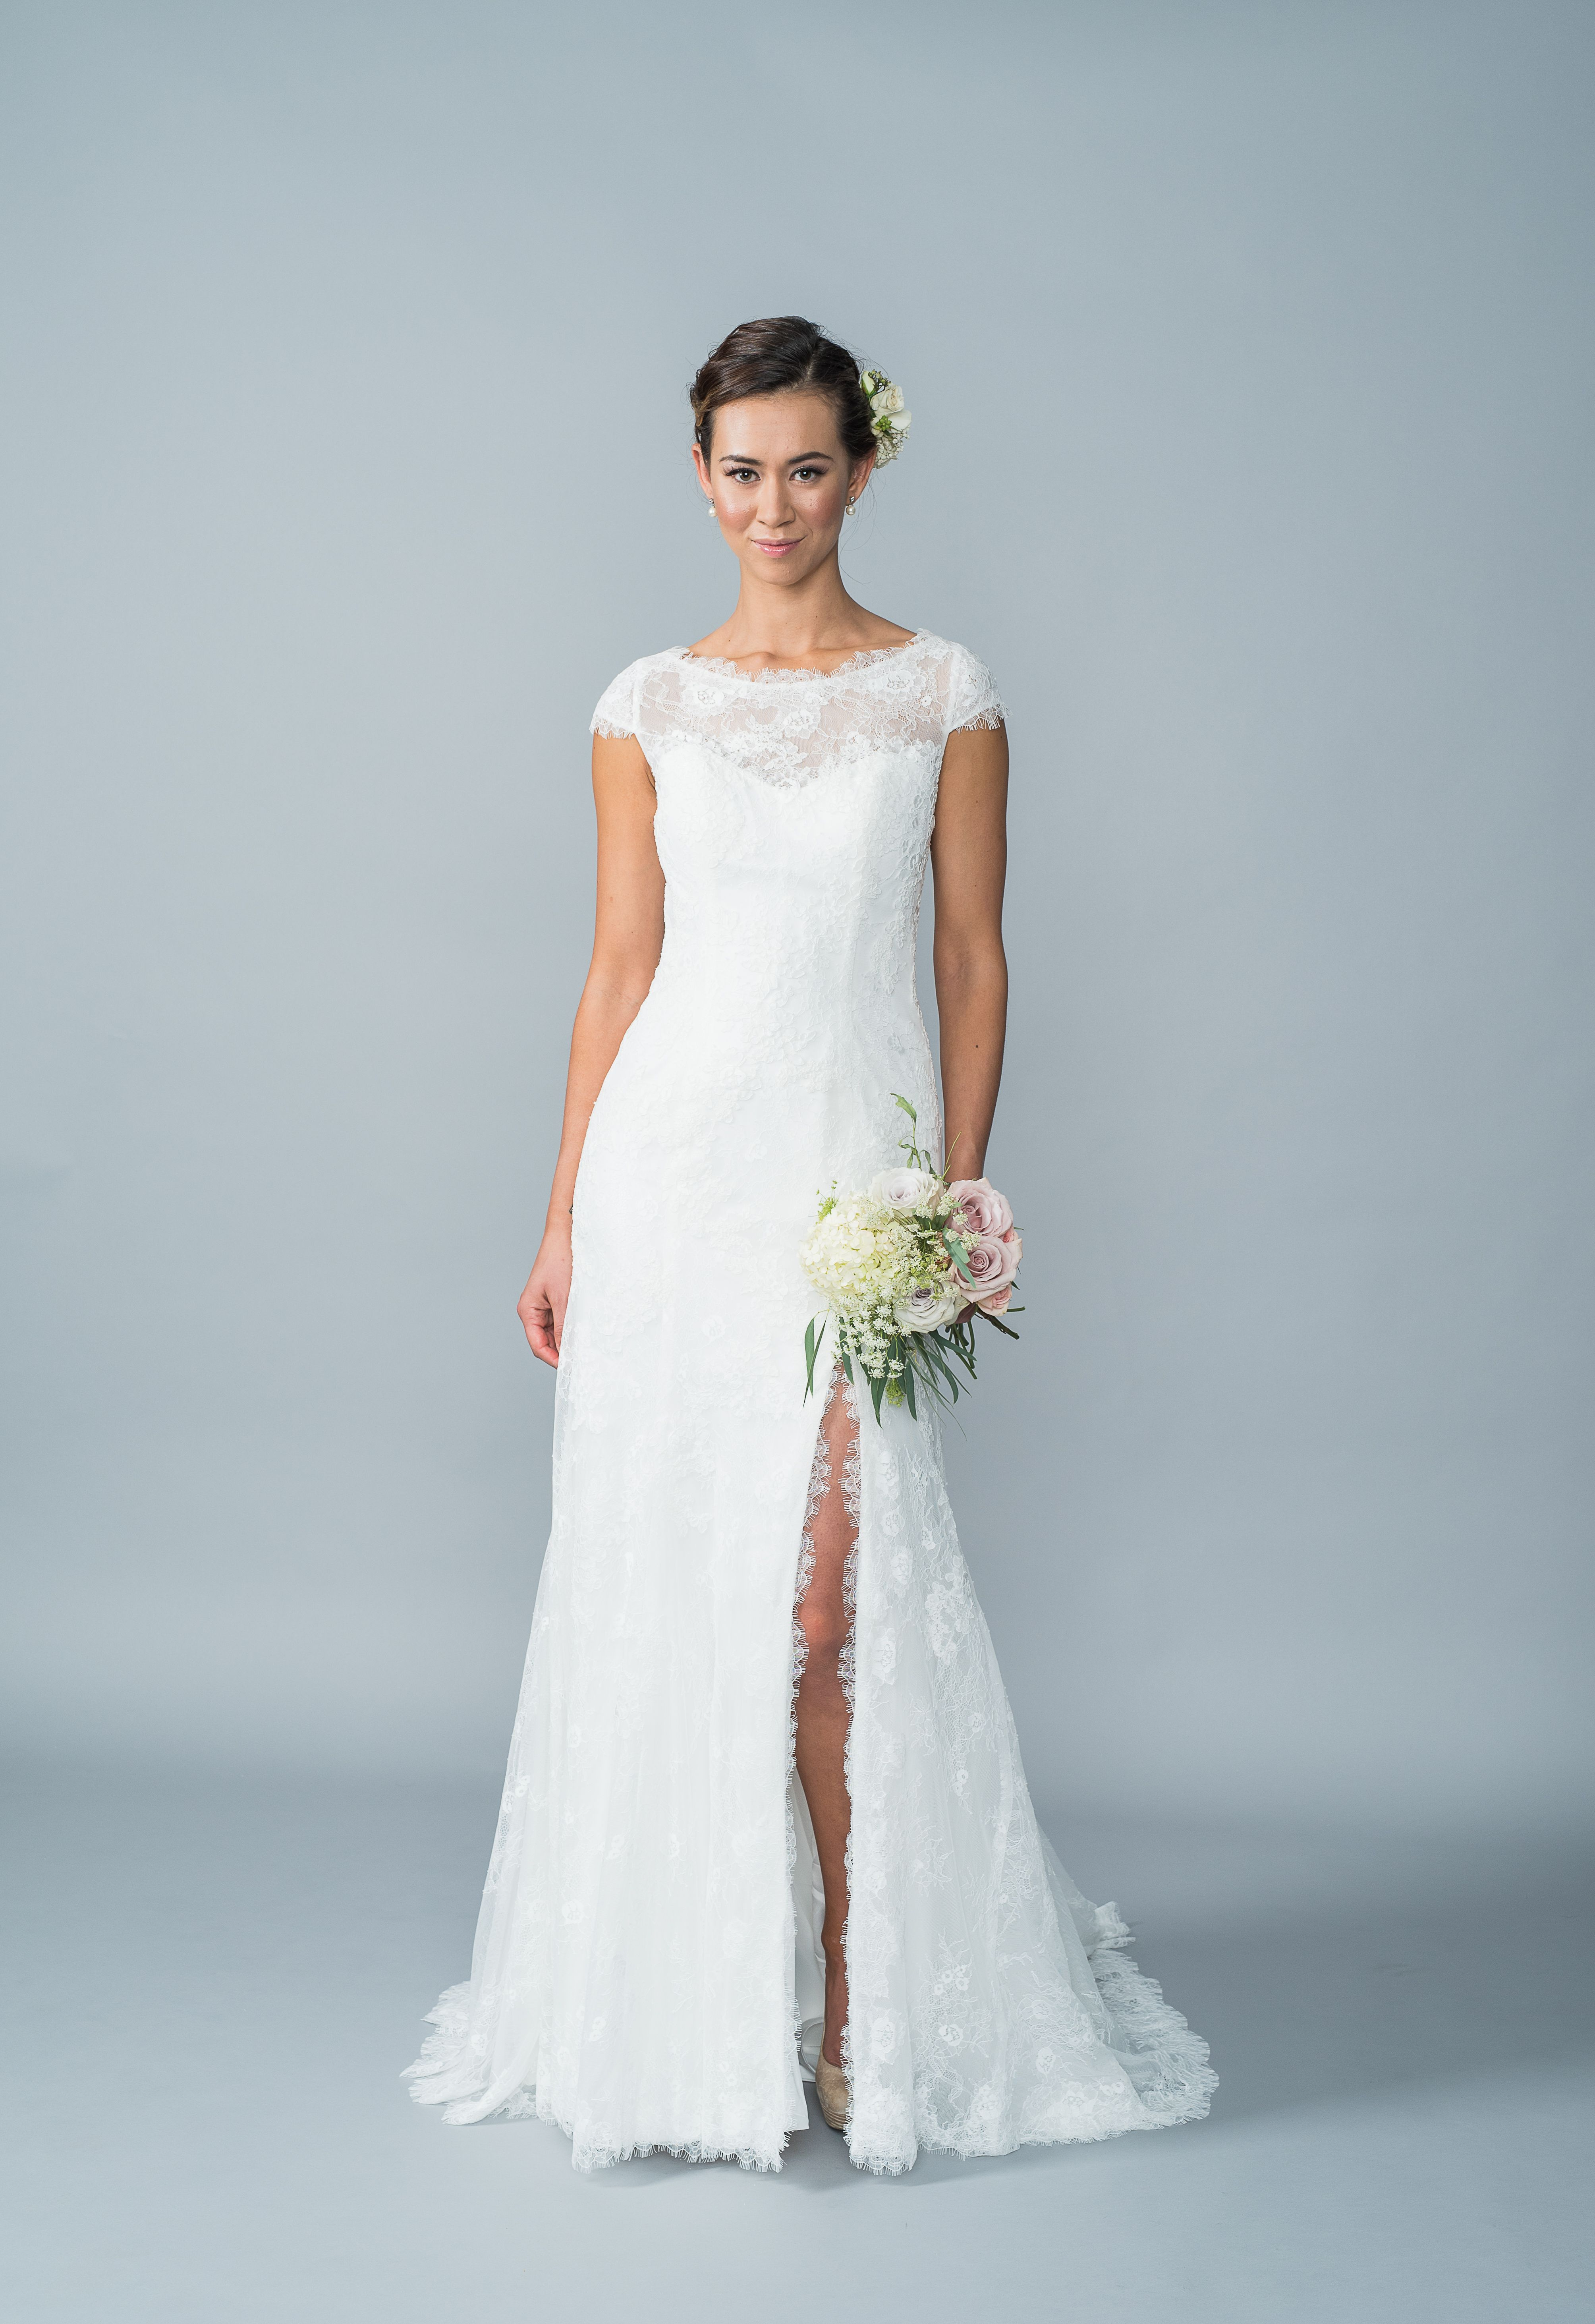 Unique Wedding Dress Resale Ensign - All Wedding Dresses ...